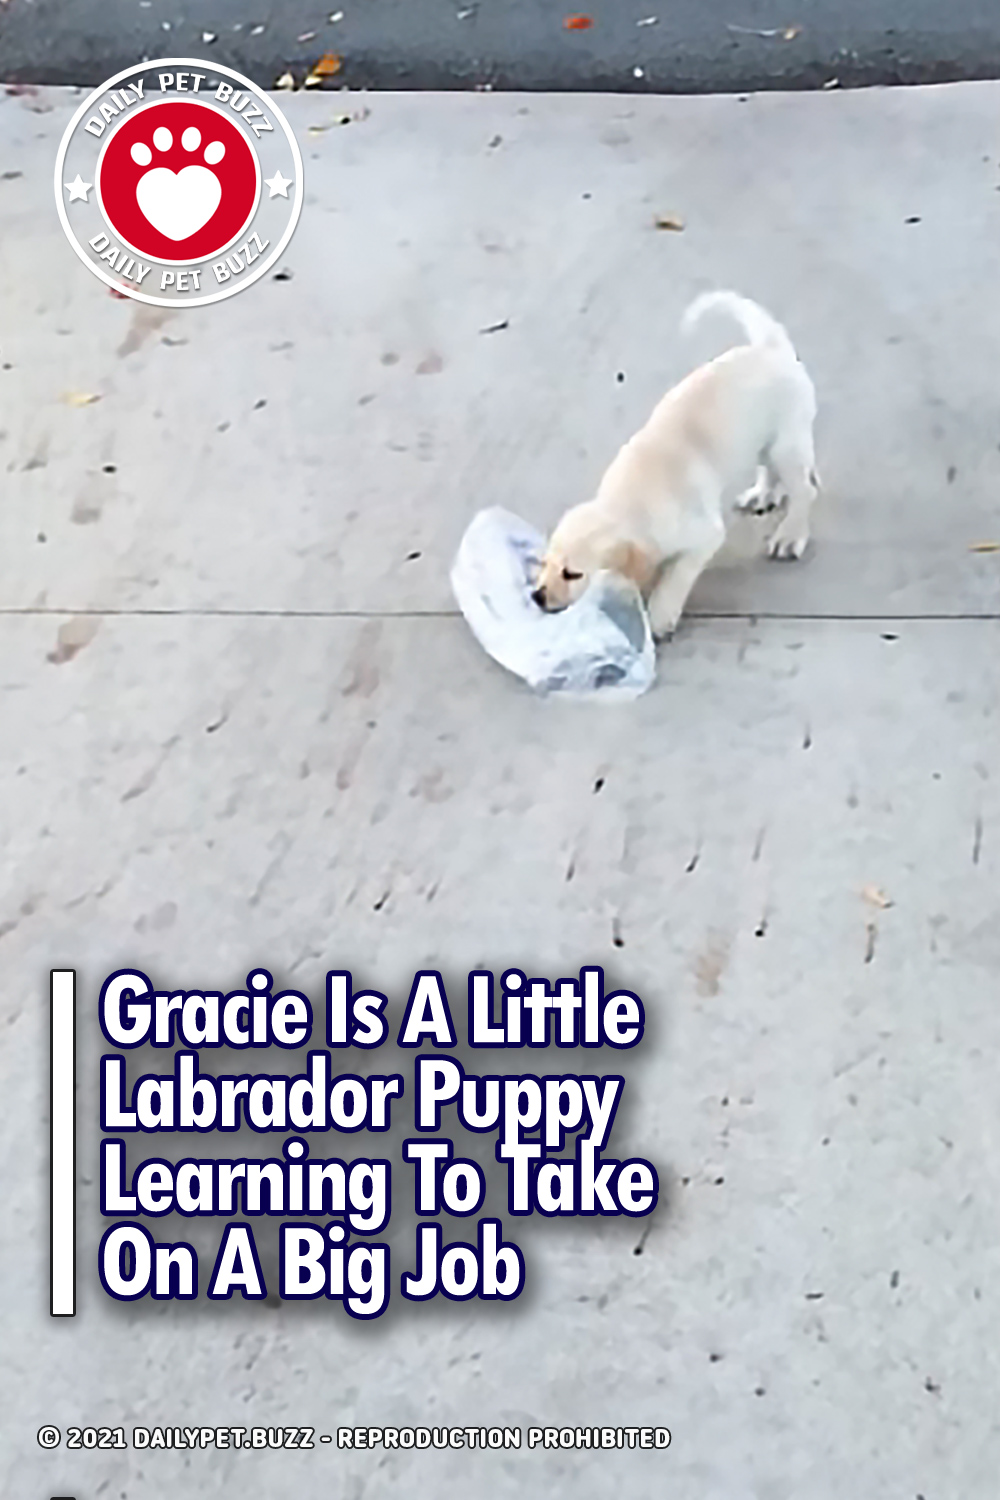 Gracie Is A Little Labrador Puppy Learning To Take On A Big Job